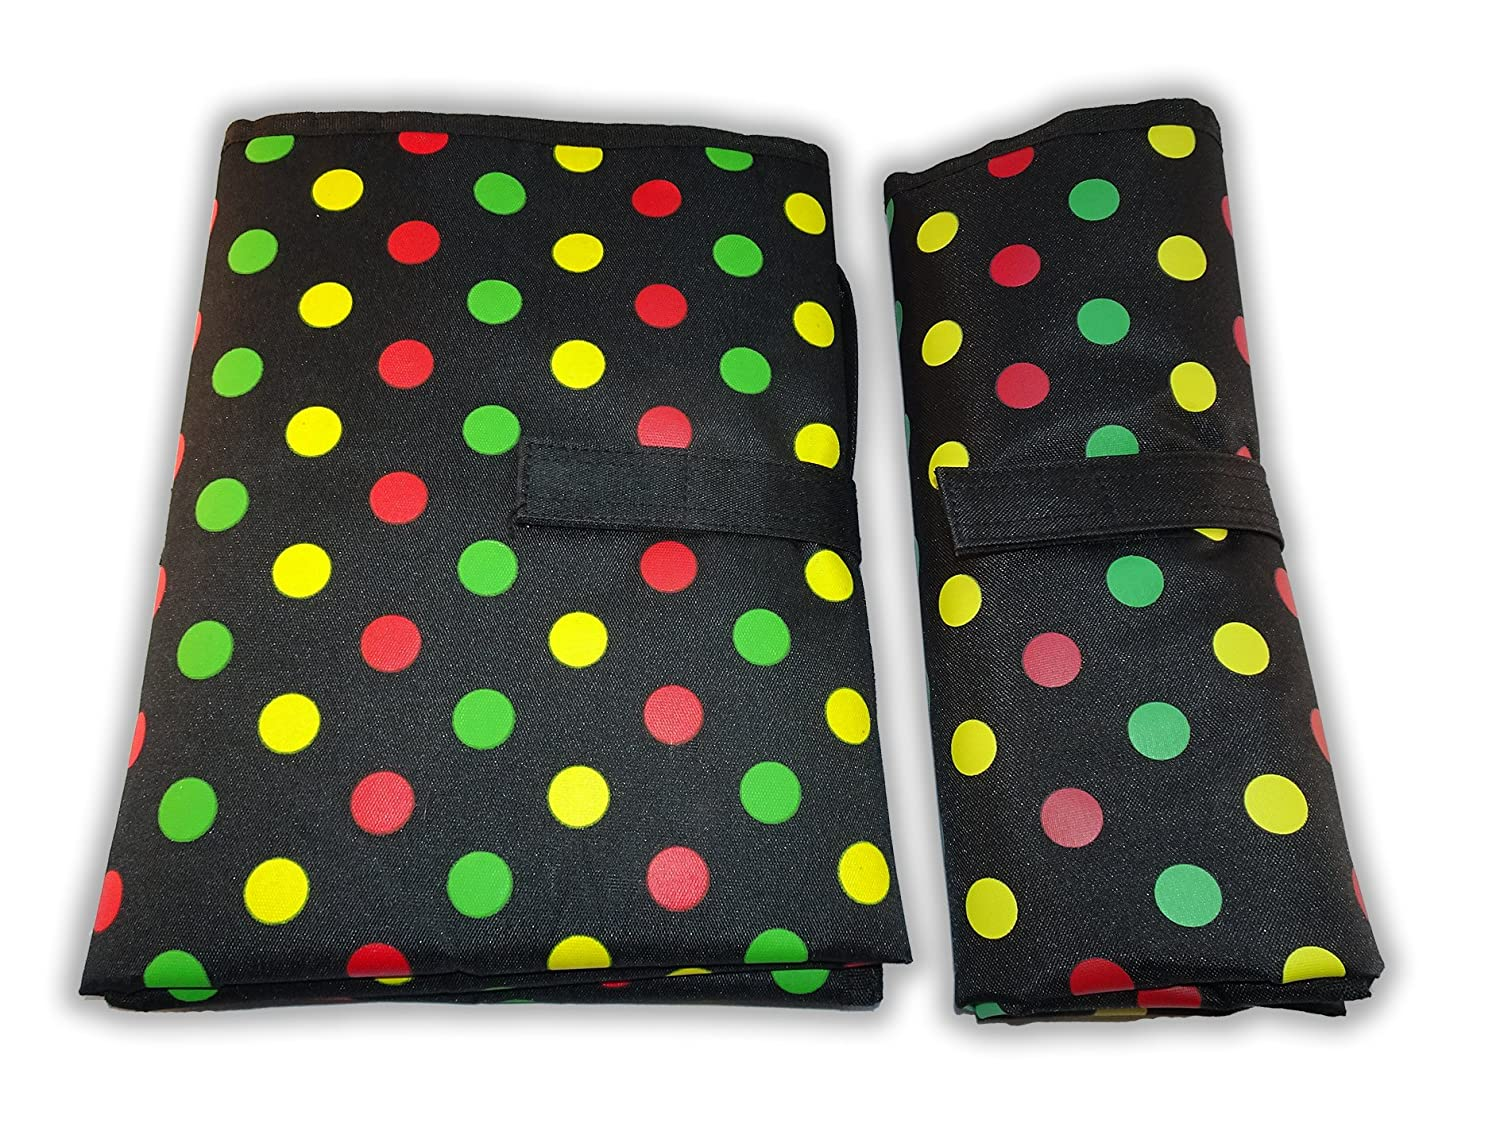 Waterproof Baby Diaper Changing Mat - One Hand Fold Grab & Go, Easy to Use, Large, Portable, Padded, Wipe Clean, On the Go Travel Change Station Pad (Black with White Dots) by Contented Infant